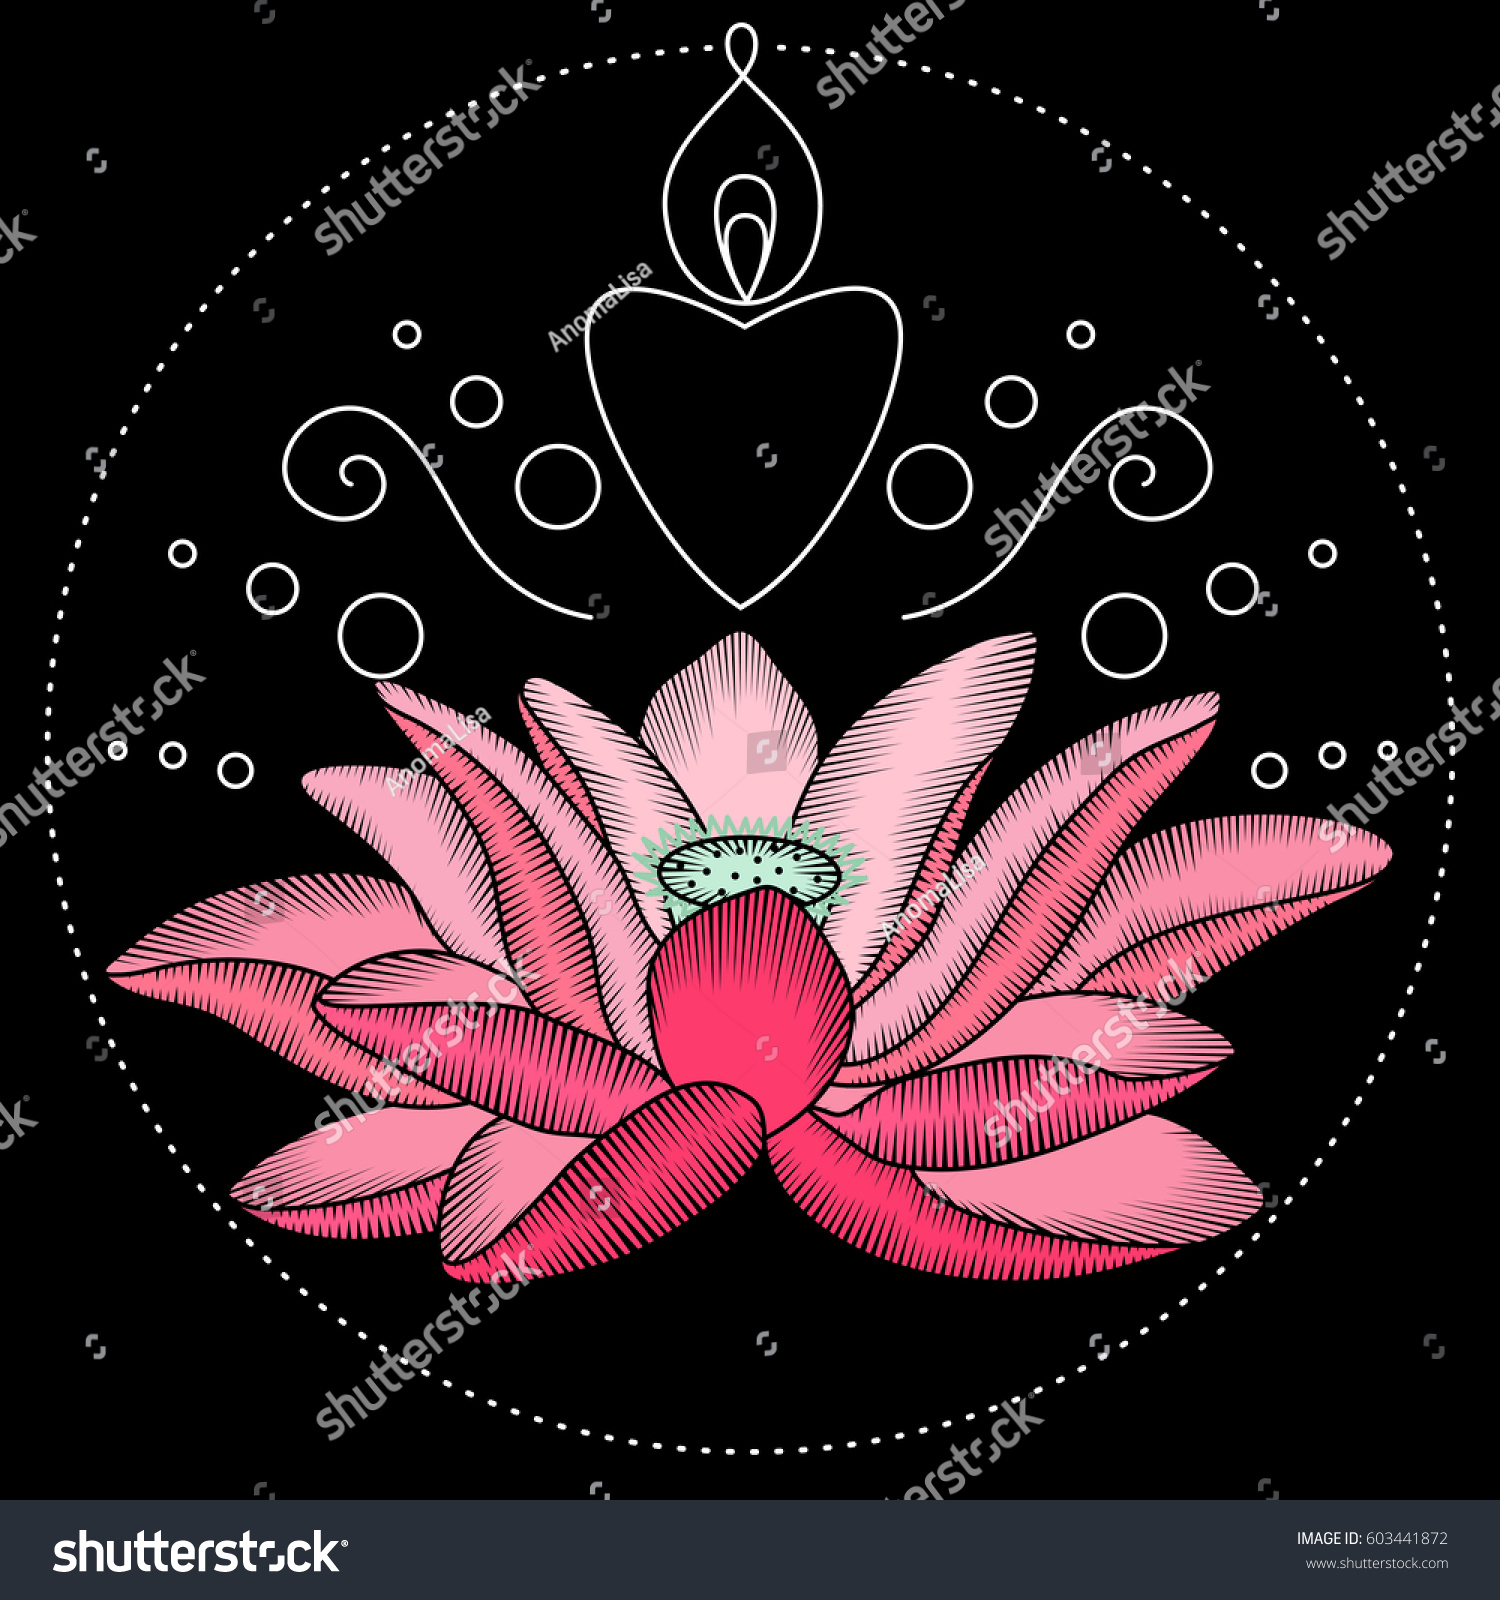 Embroidery Lotus Flower Artwork Clothing Patches Stock Vector